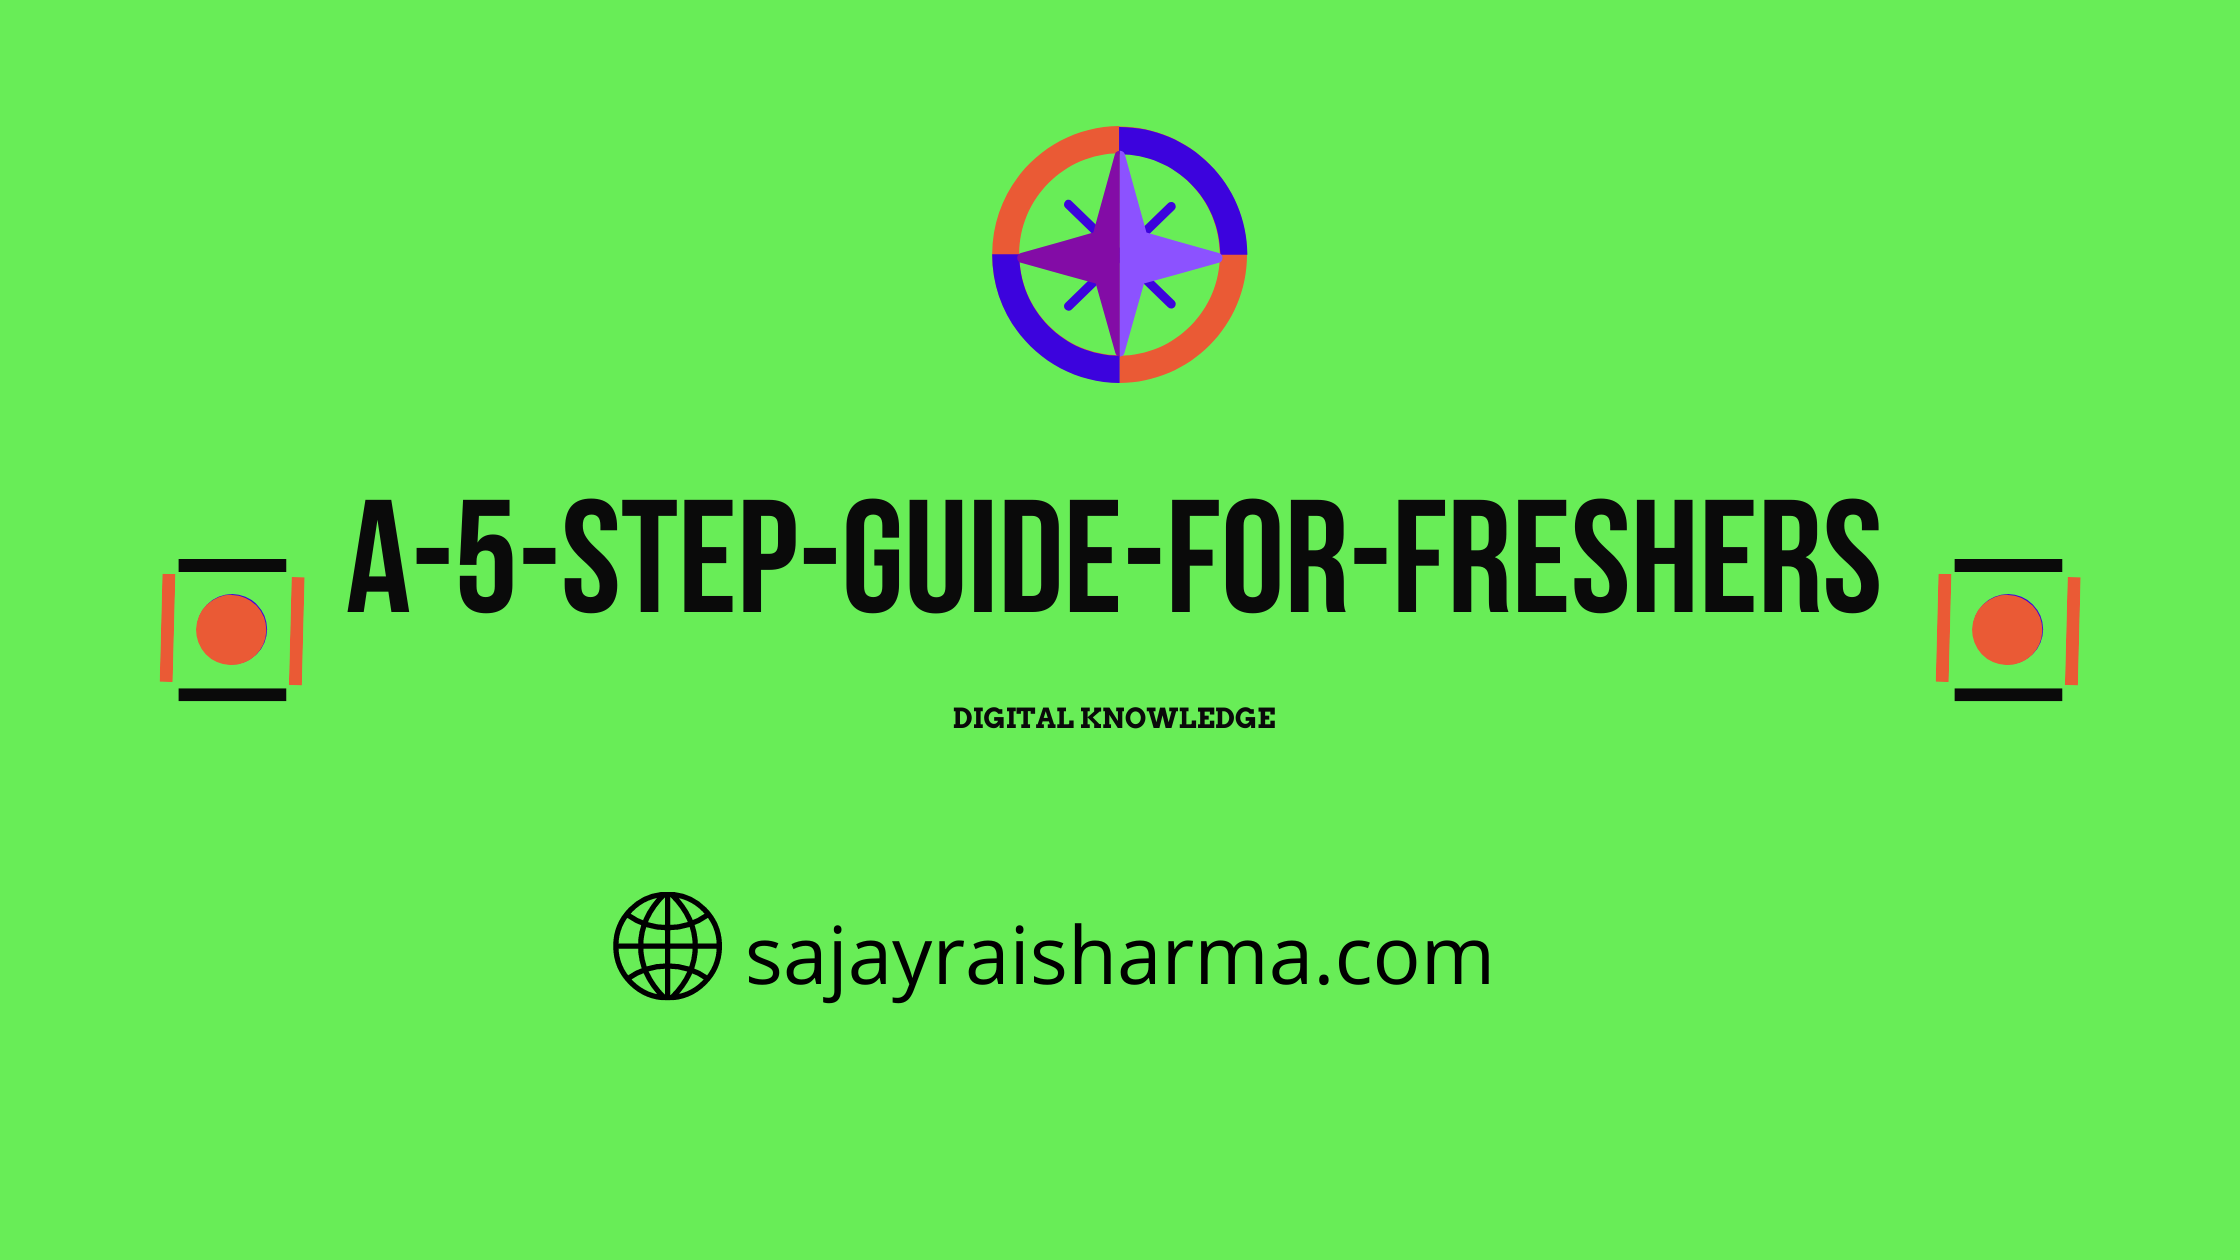 A 5 STEP GUIDE  FOR FRESHERS